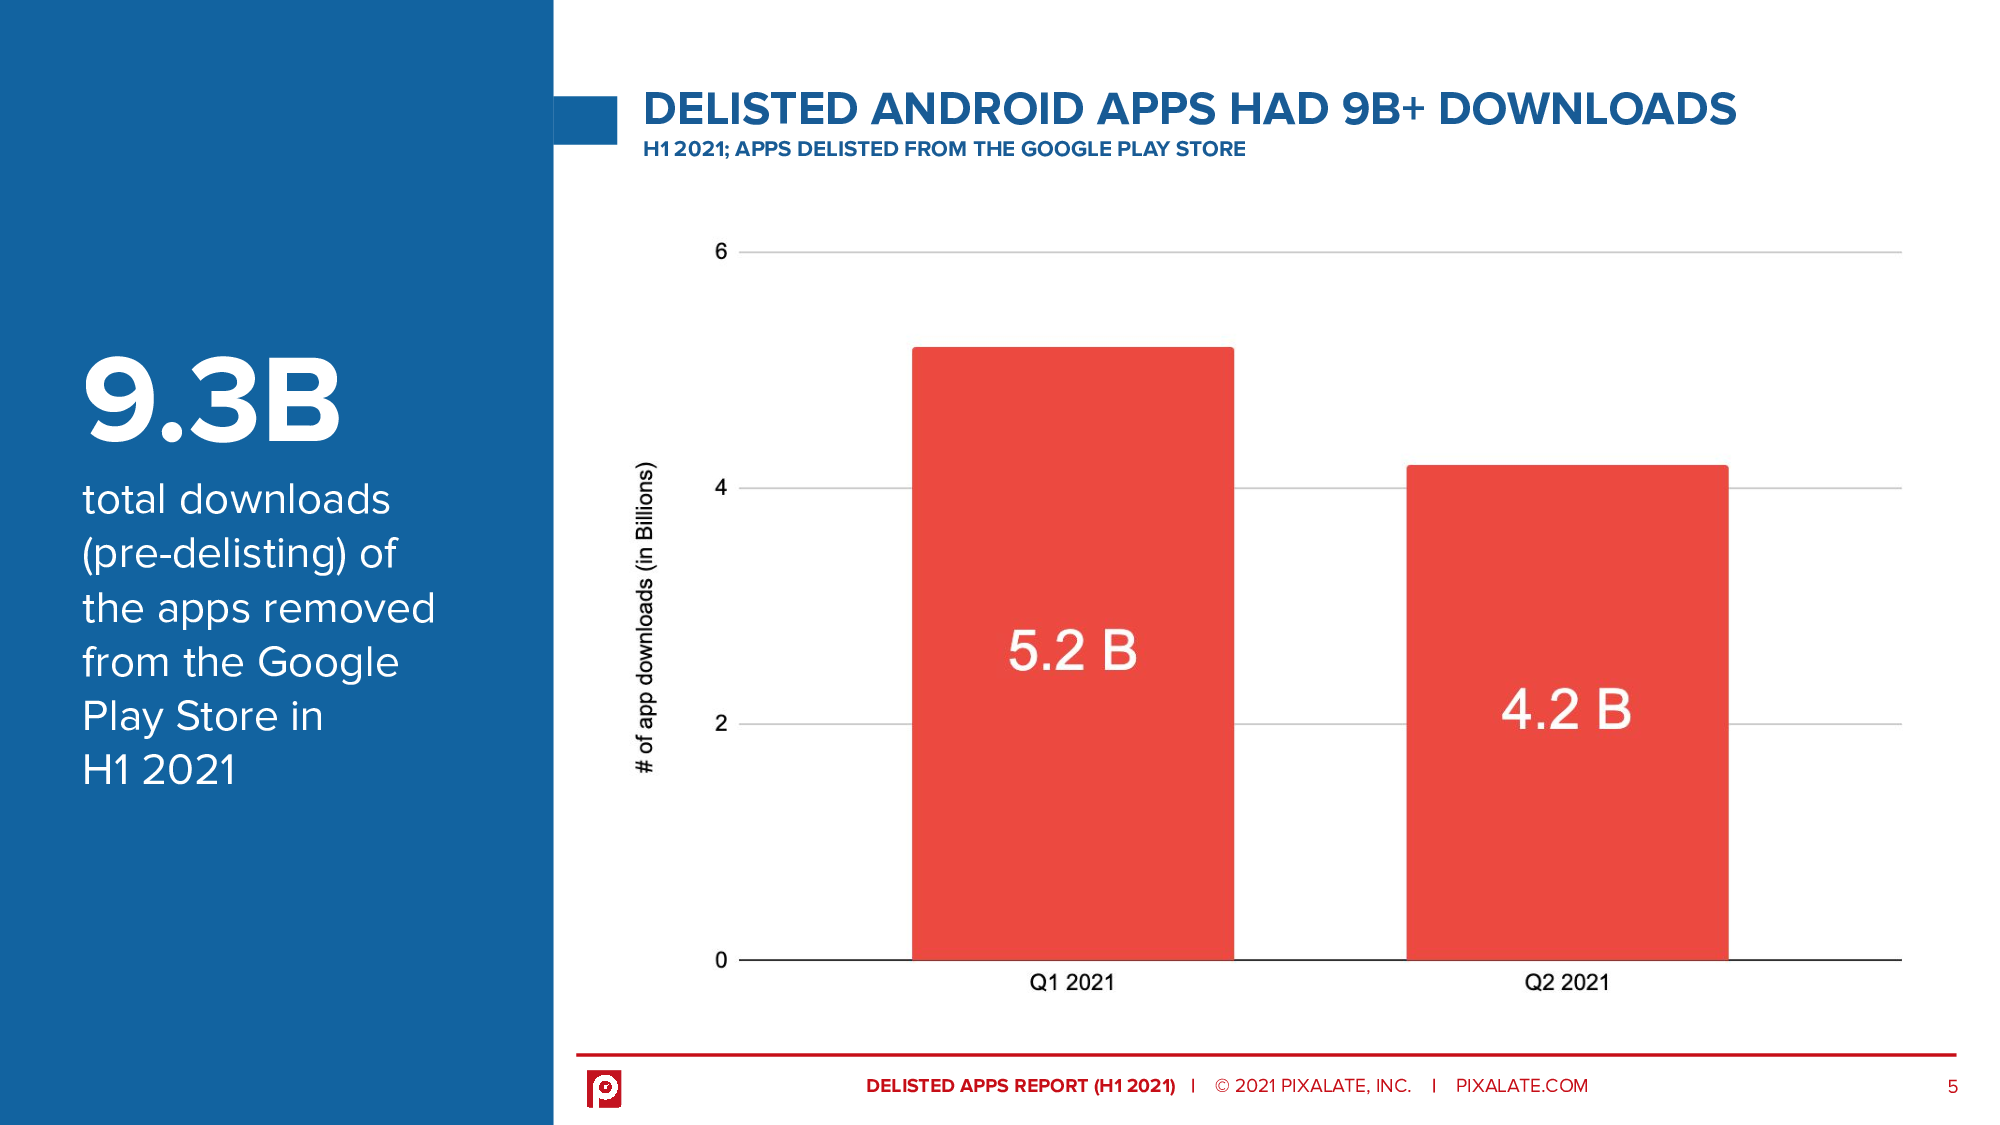 Android delisted apps were downloaded 9.3 billion times prior to delisting